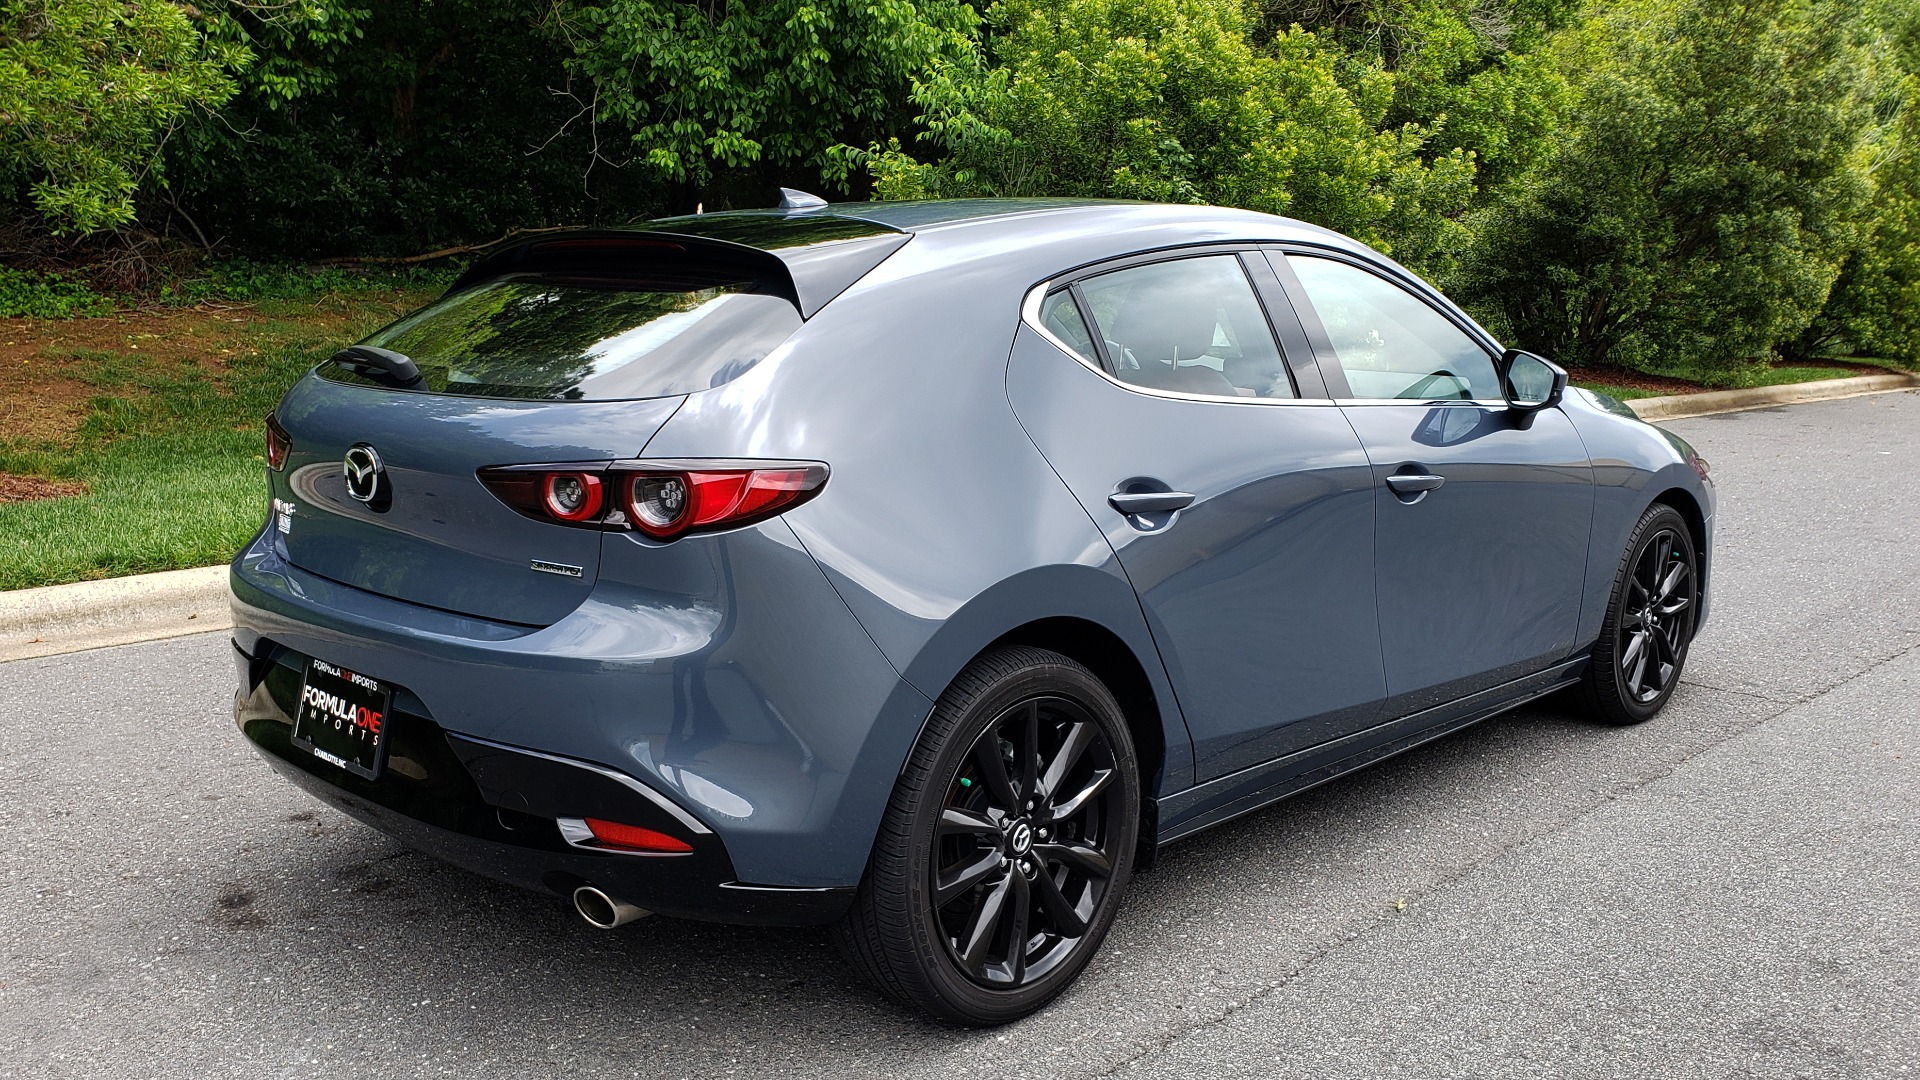 Used 2019 Mazda MAZDA3 HATCHBACK PREMIUM PKG / AUTO / 18IN BLACK ALLOY WHEELS / BOSE / LEATHER for sale Sold at Formula Imports in Charlotte NC 28227 6